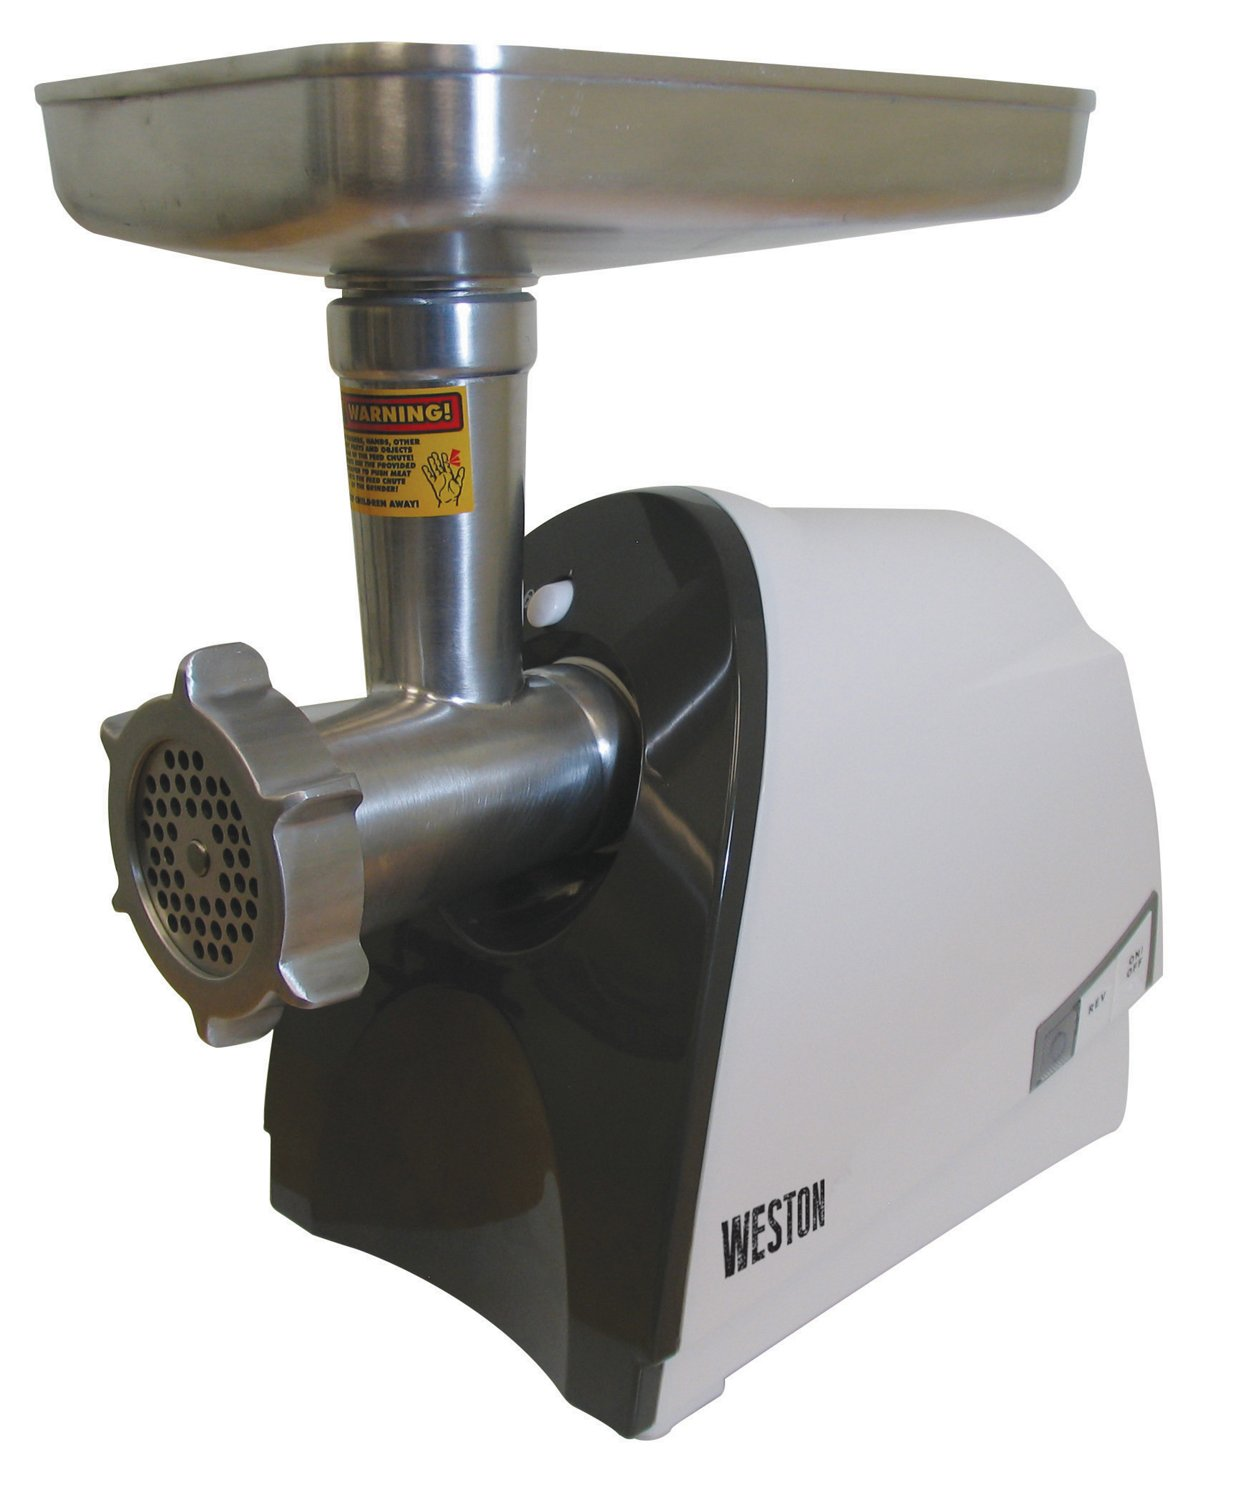 Weston #8 Heavy-Duty Electric Meat Grinder and Sausage Stuffer 575 Watts